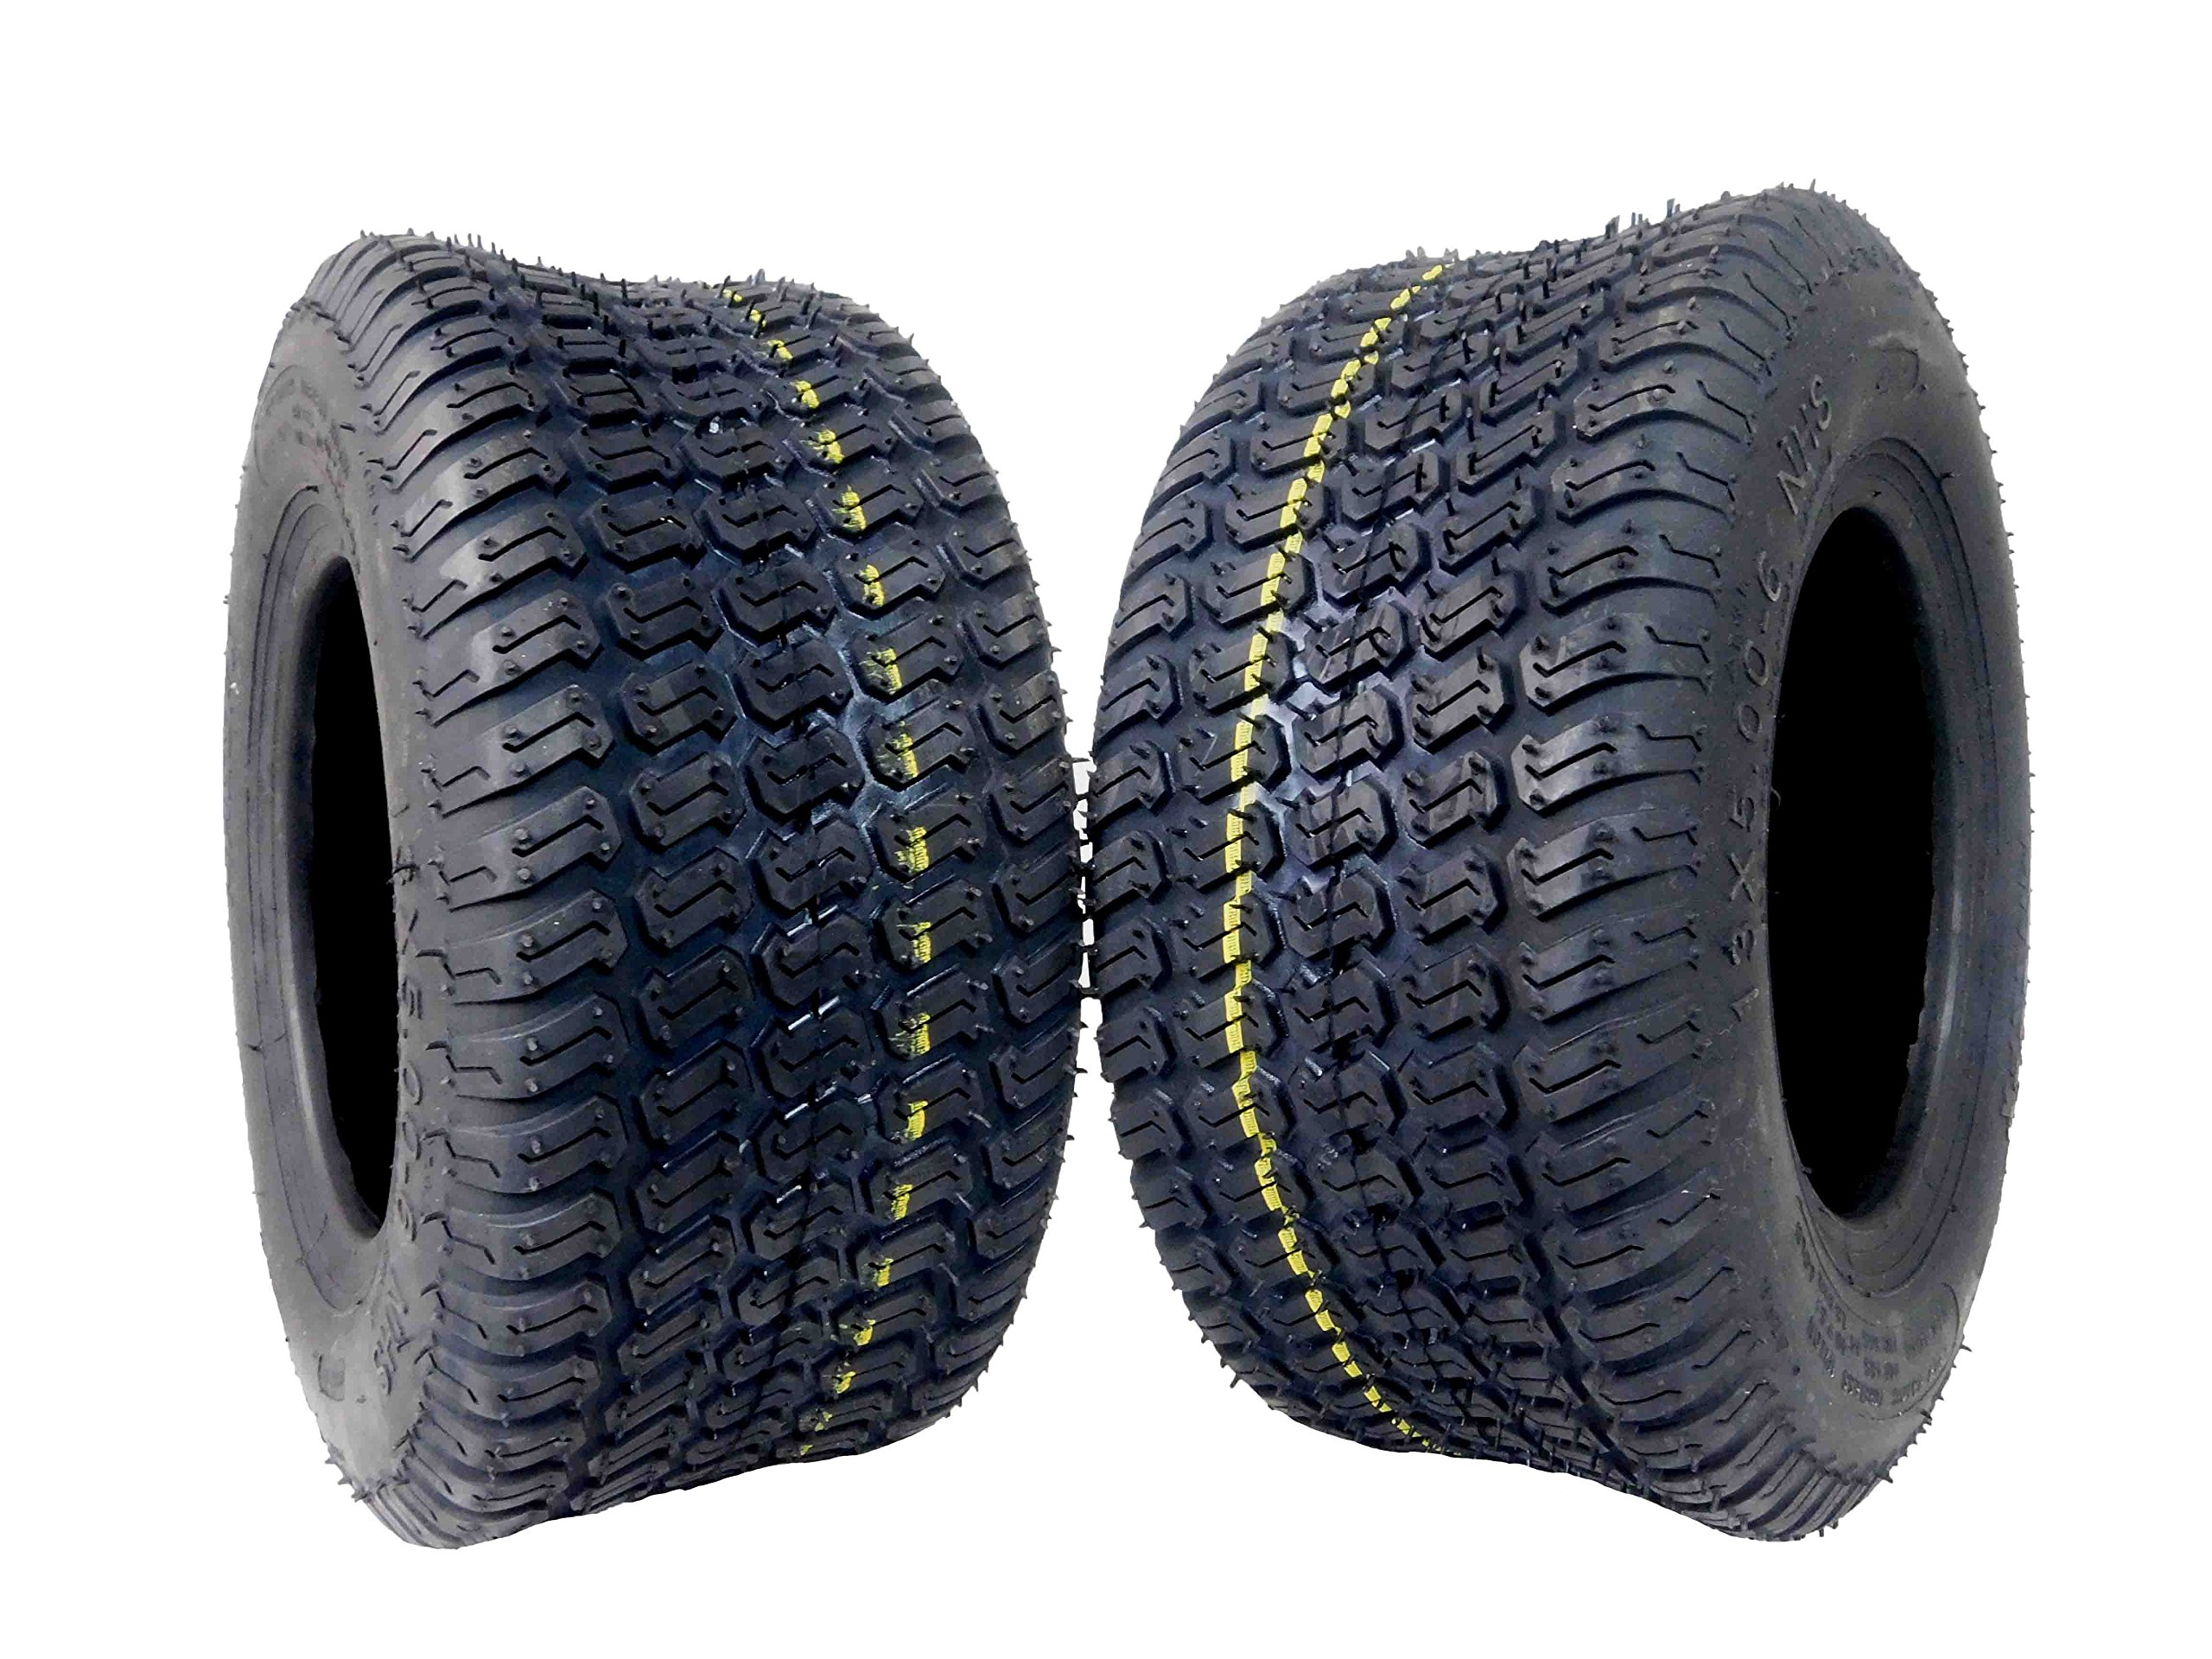 MASSFX Lawn Mower and Garden Tires 13x5-6 MO1356 4 PLY 3mm Tread 2 Tire Set by MASSFX (Image #1)